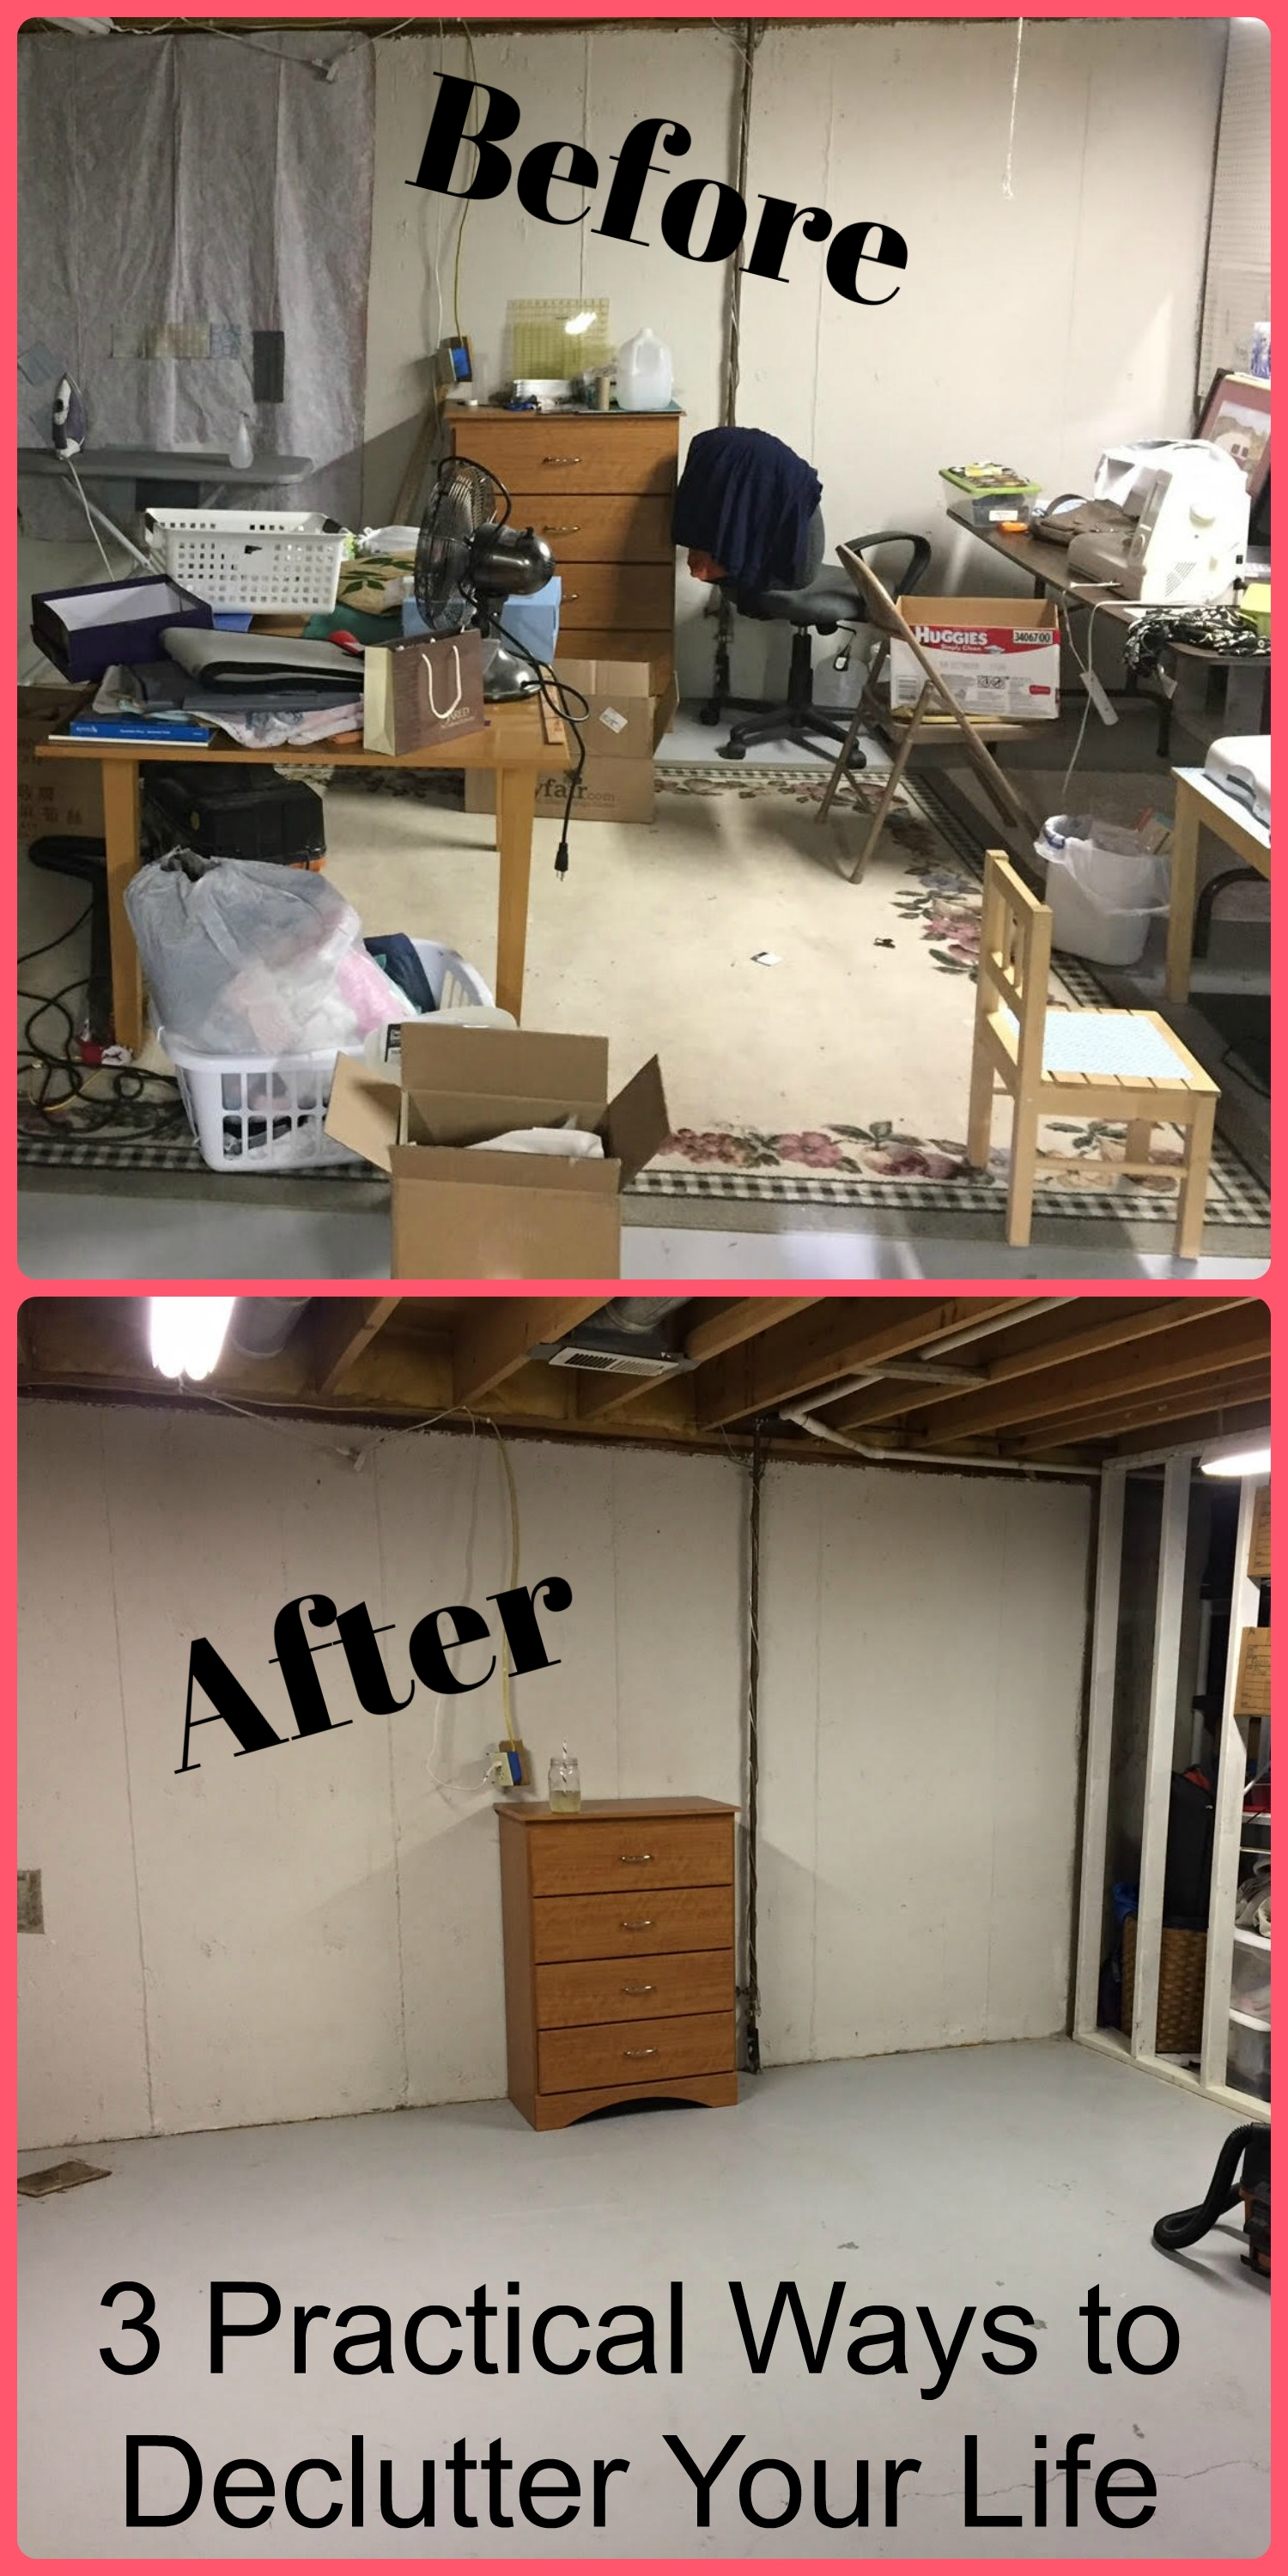 cover image of a before and after pictures depicting decluttering your space.